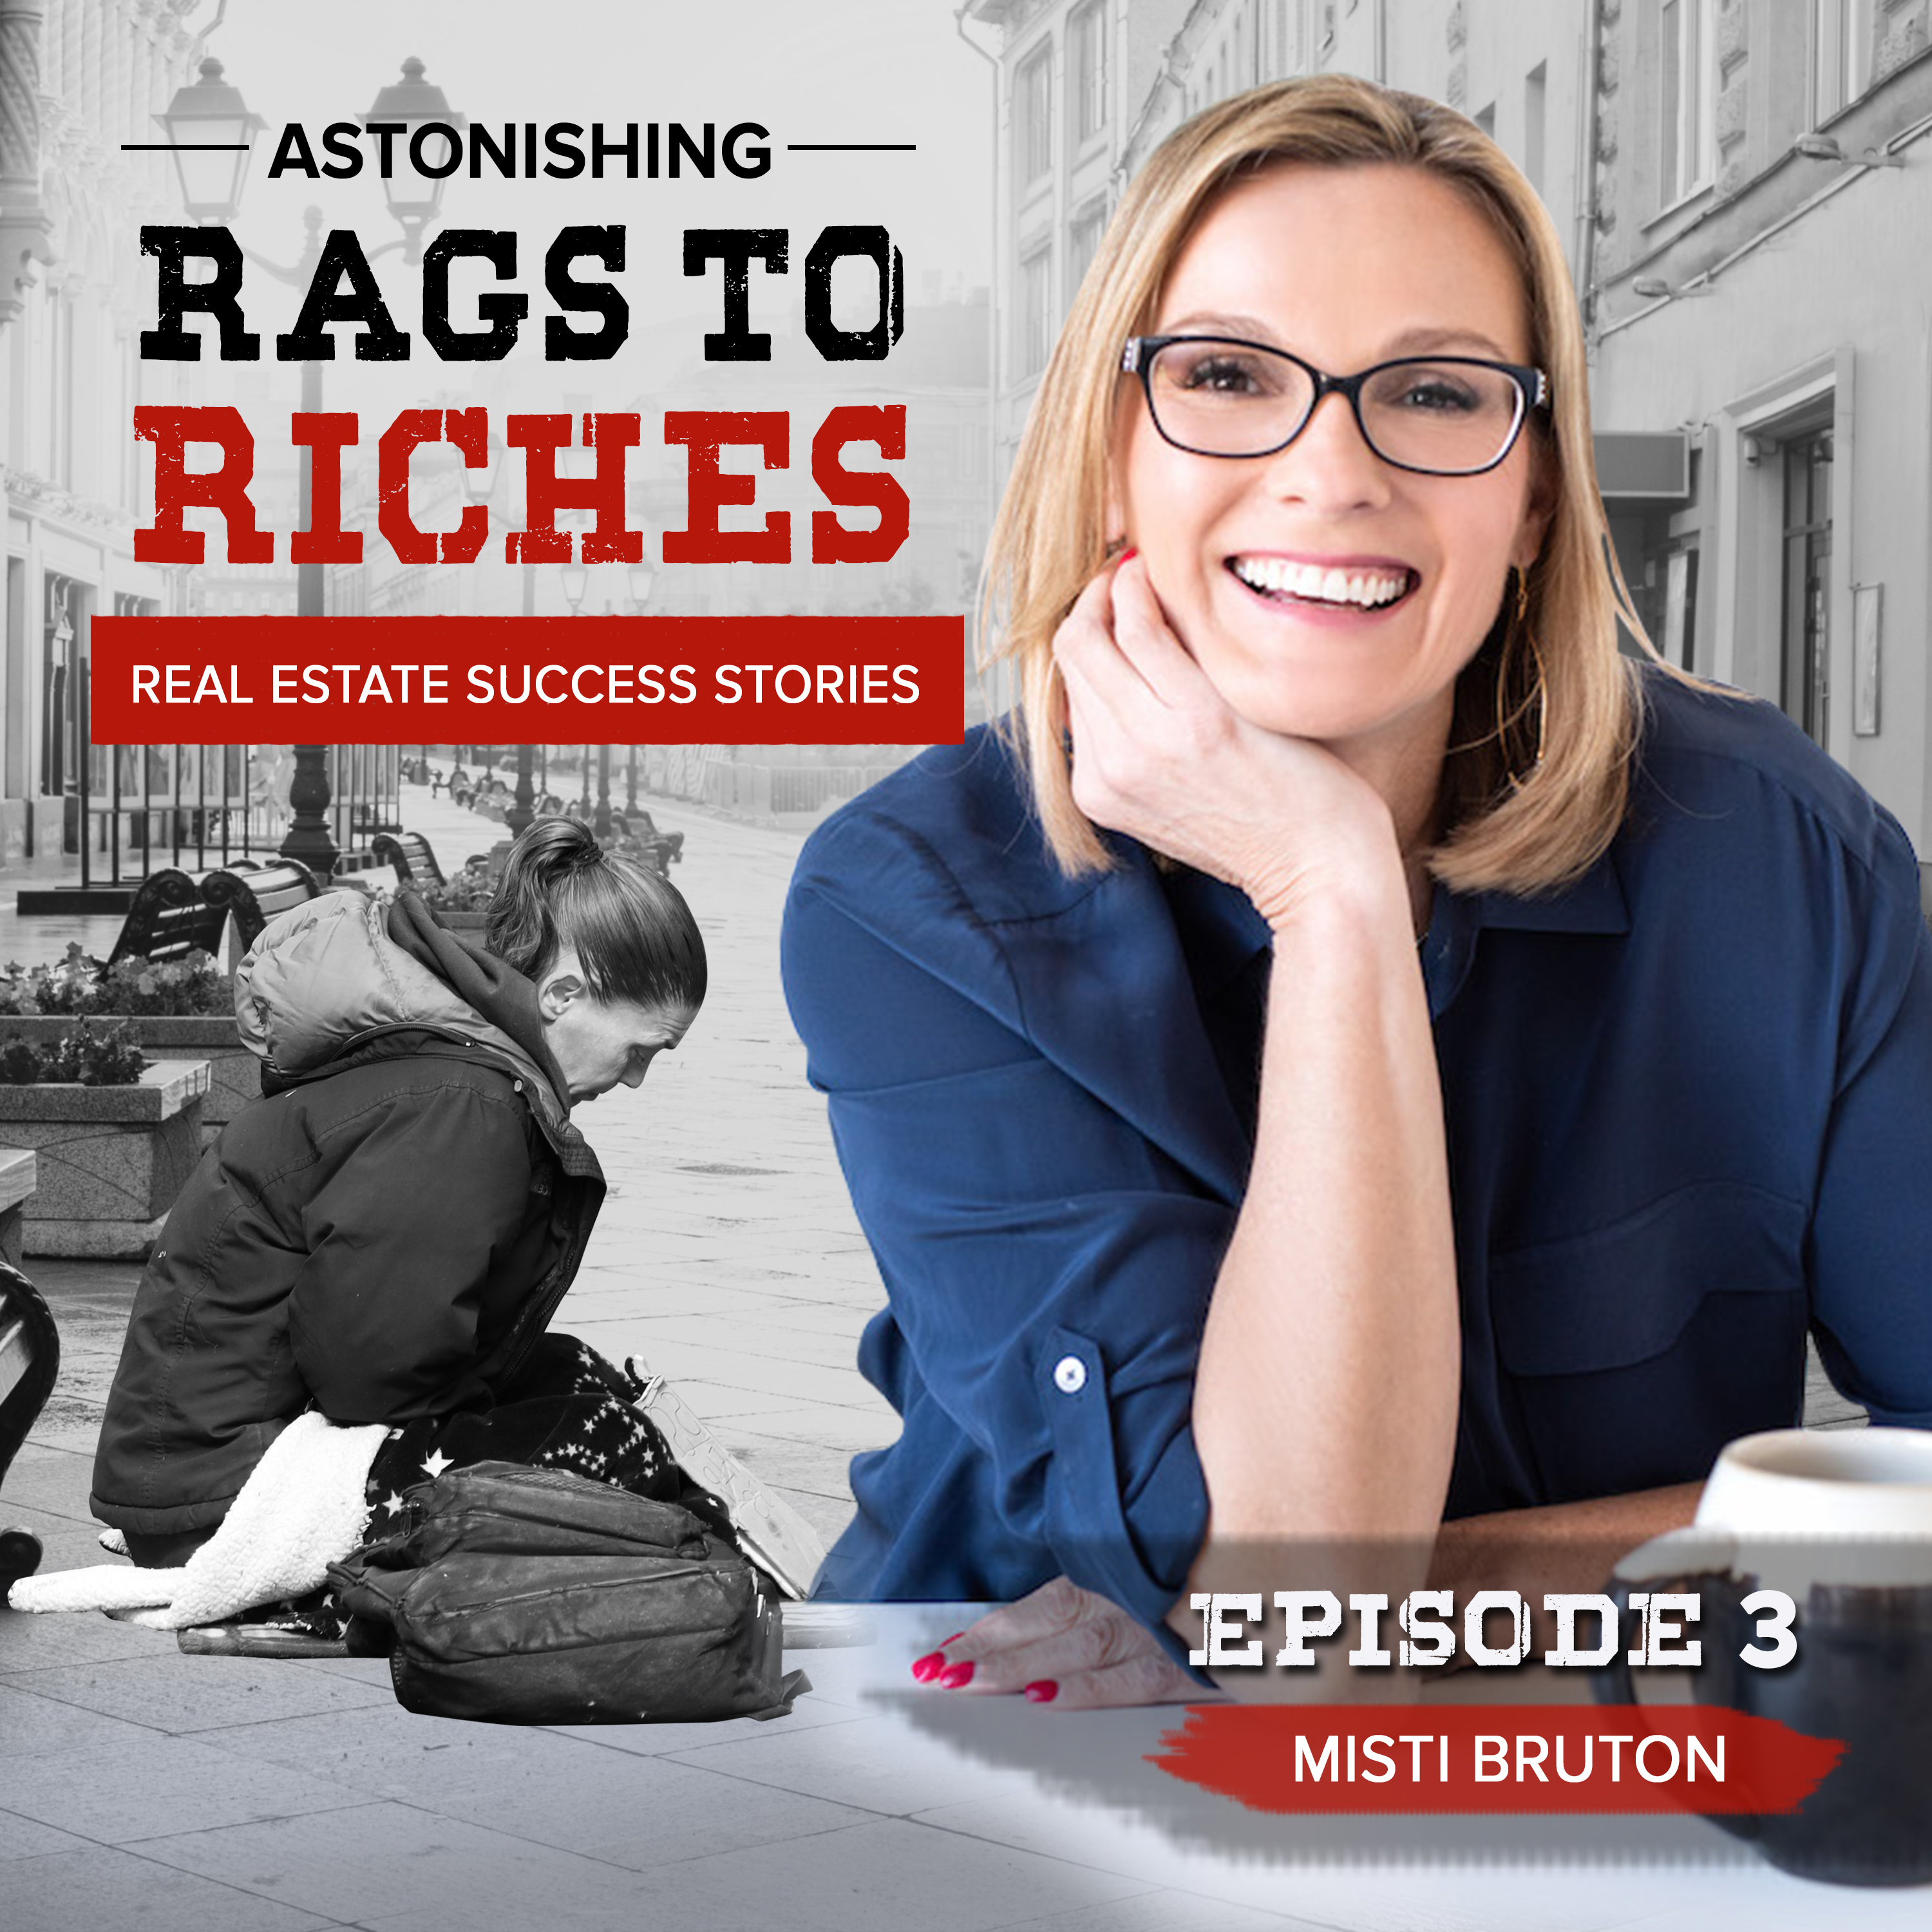 #3: MISTI BRUTON - From Homeless to OVER $2,000,000 GCI in 4 years.